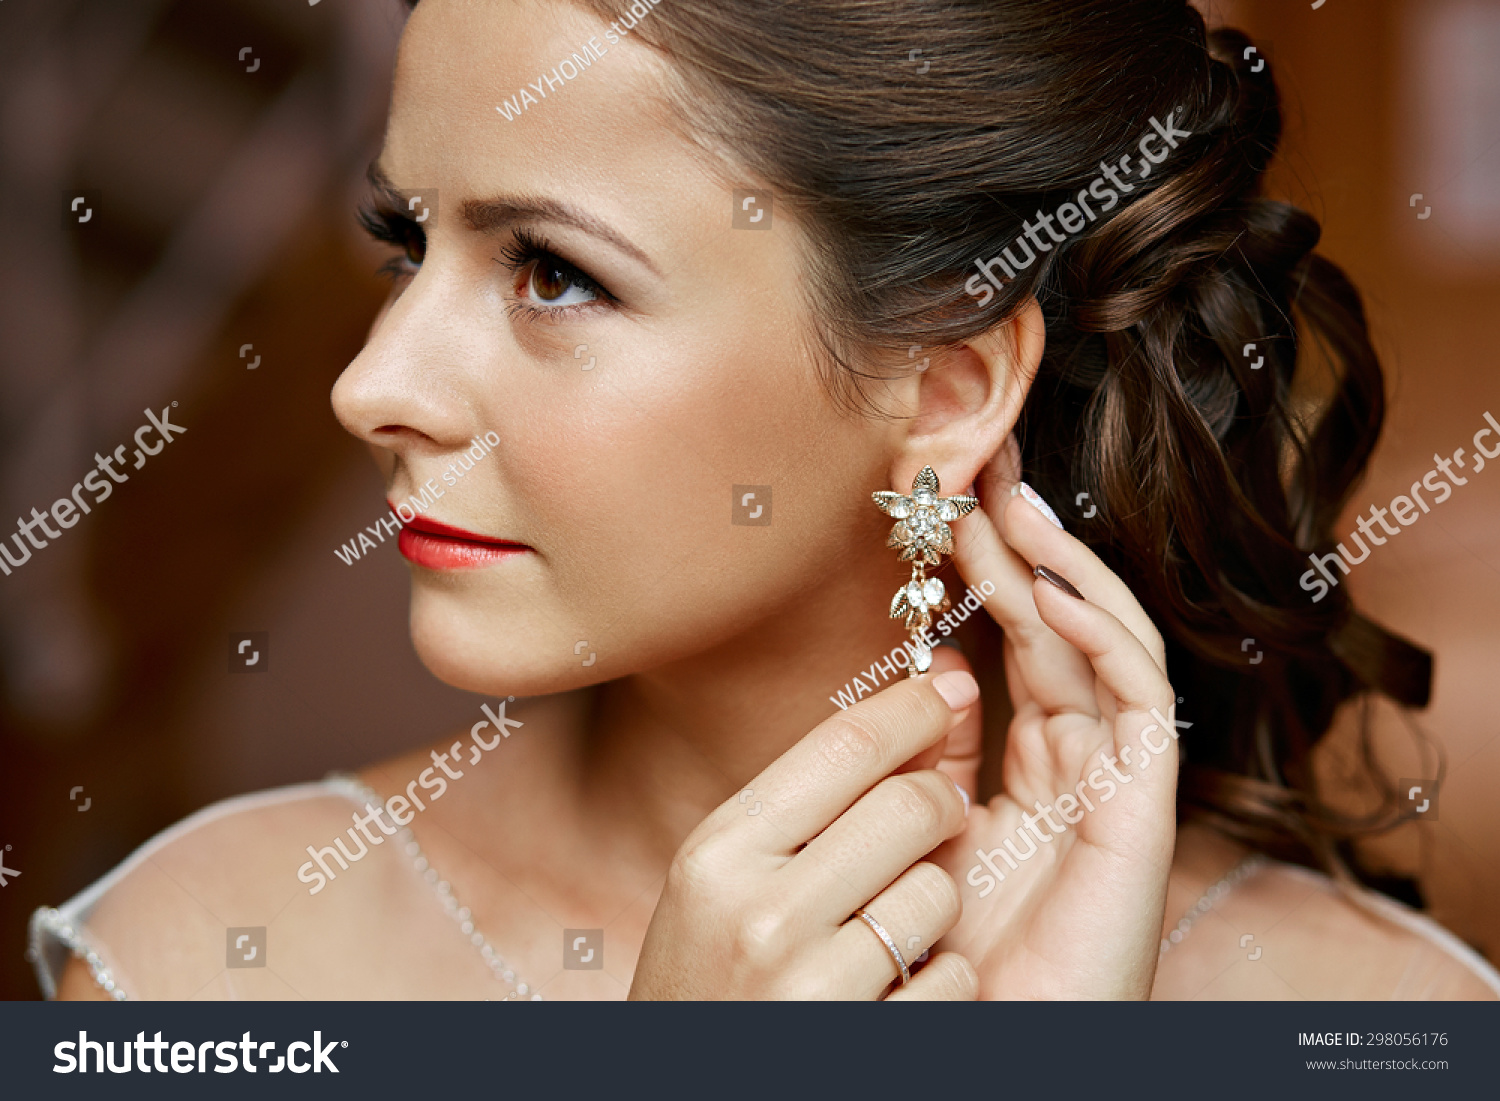 for dre your type how the choose face best diamond woman bigstock in ghanacrusader evening wearing dress earrings clothing to collection beautiful